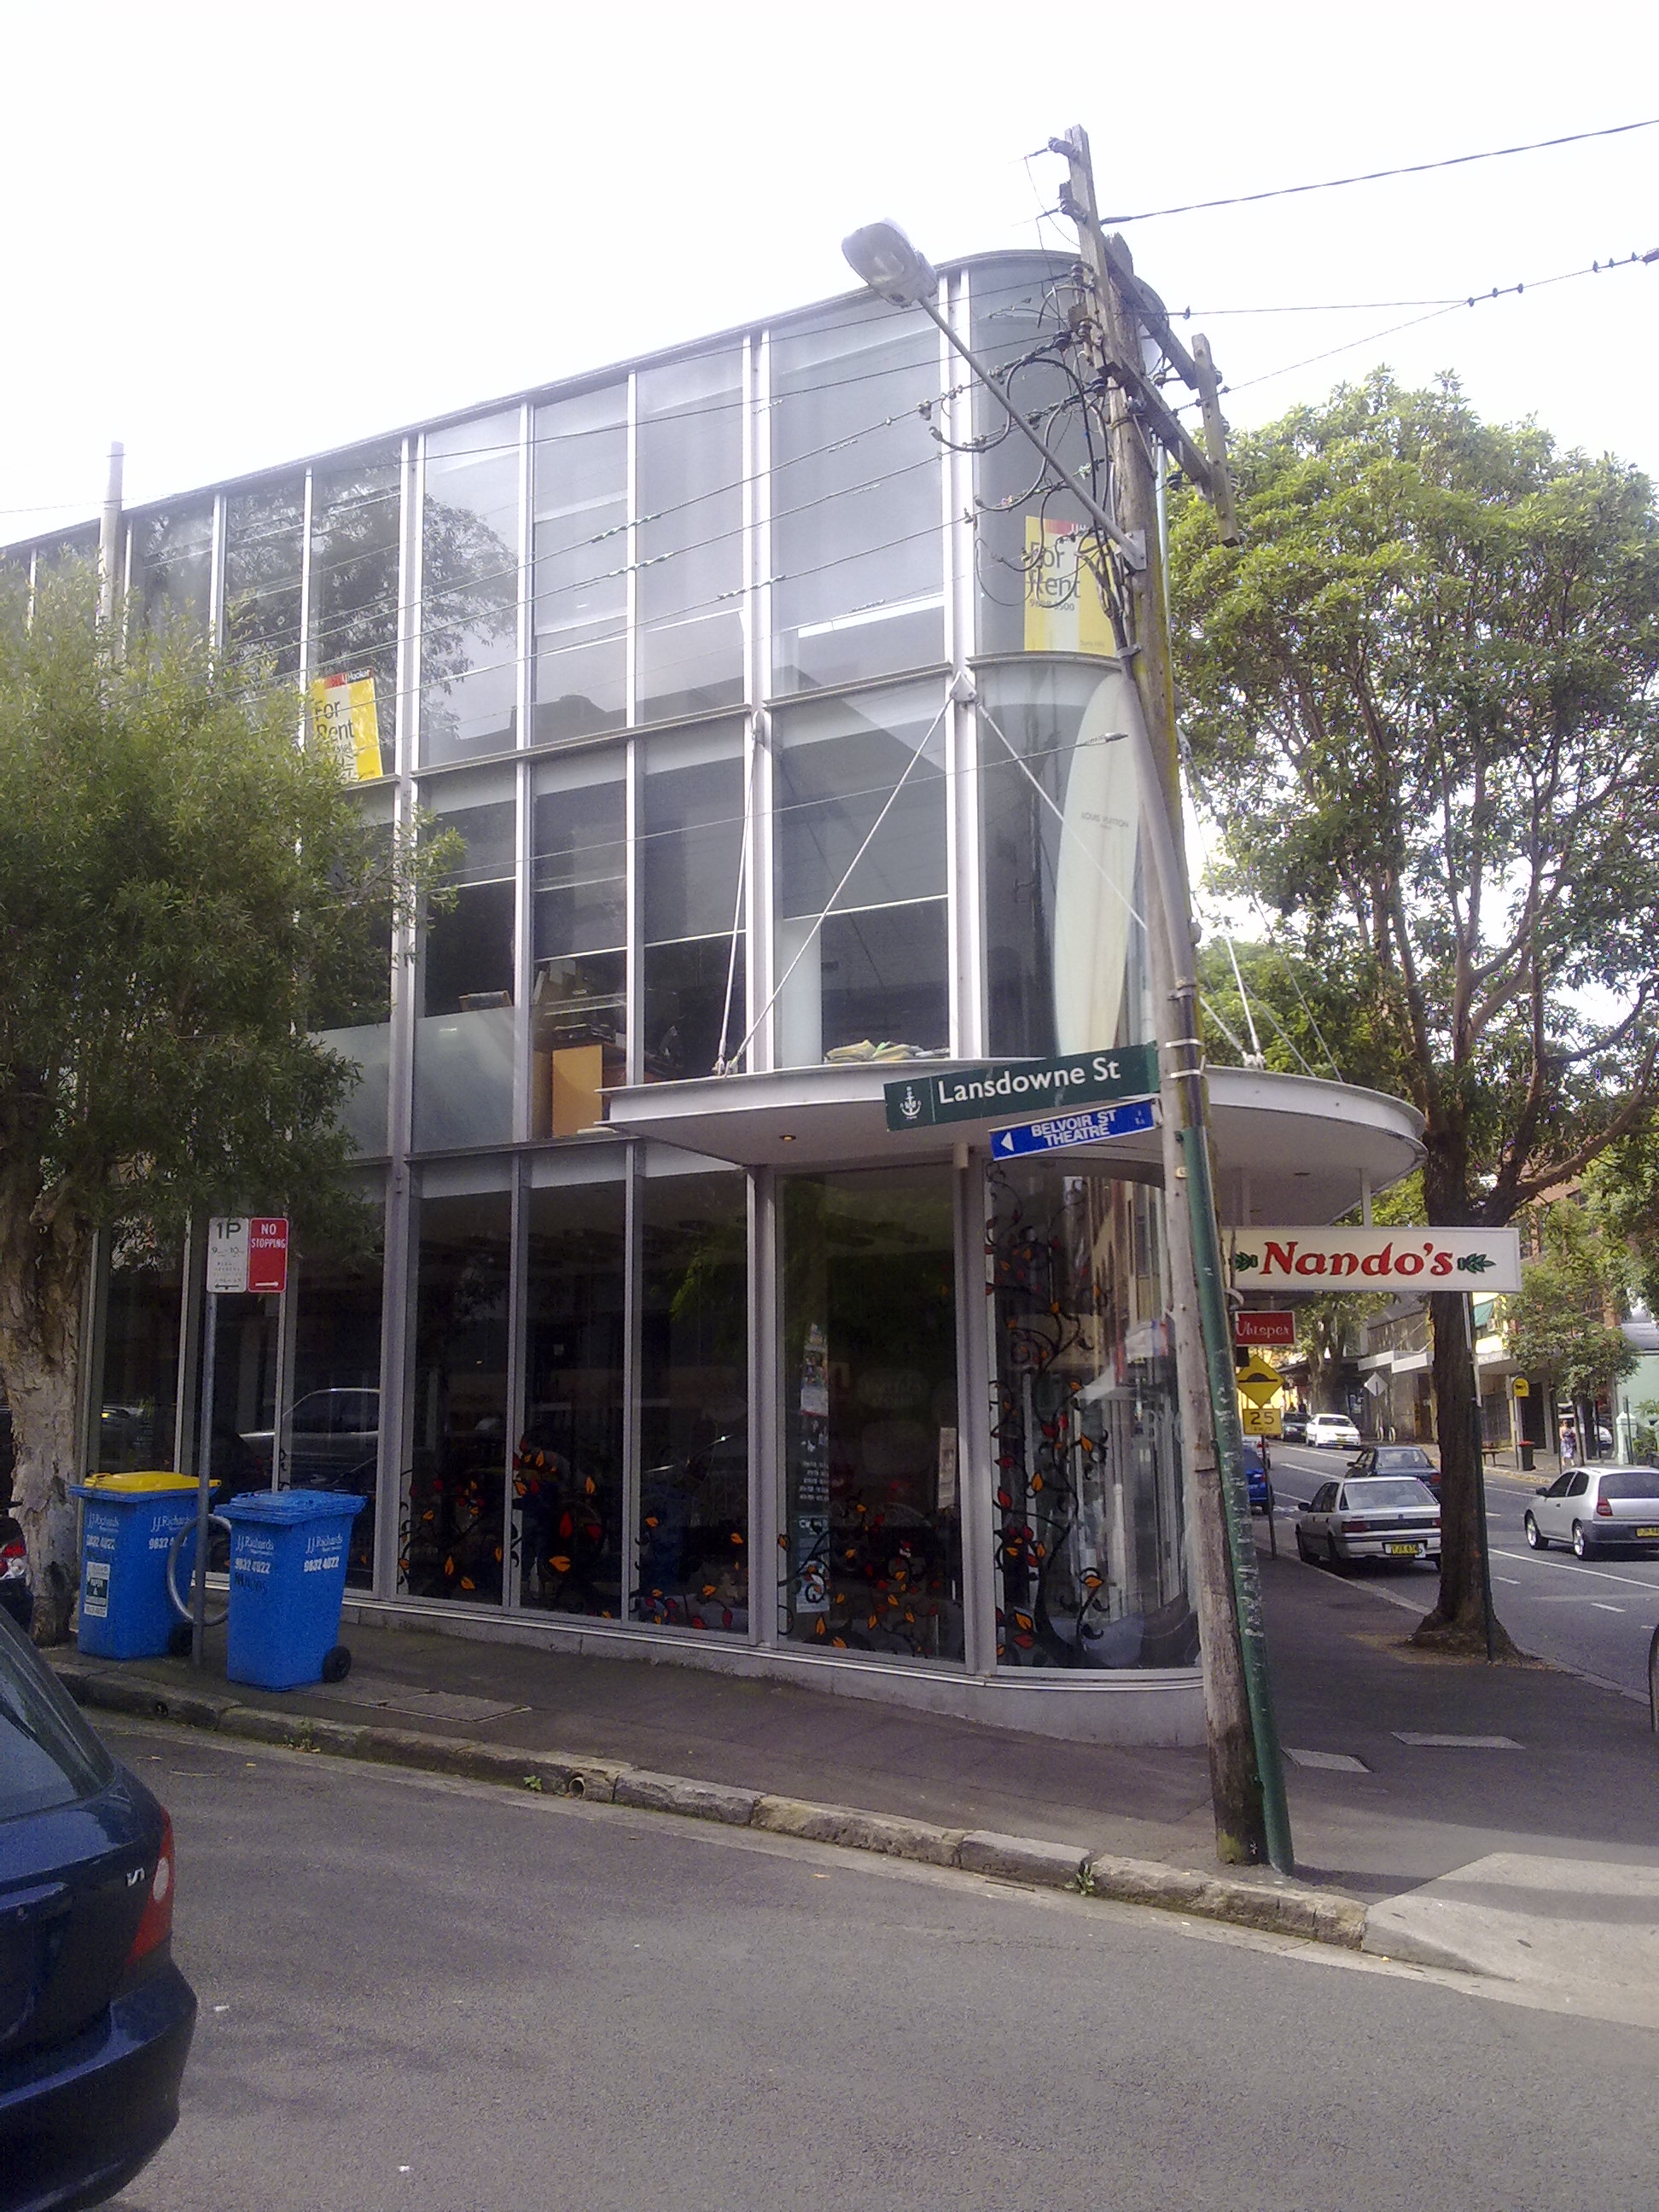 Currently Nandos on the corner of Crown and Lansdowne streets, Surry Hills